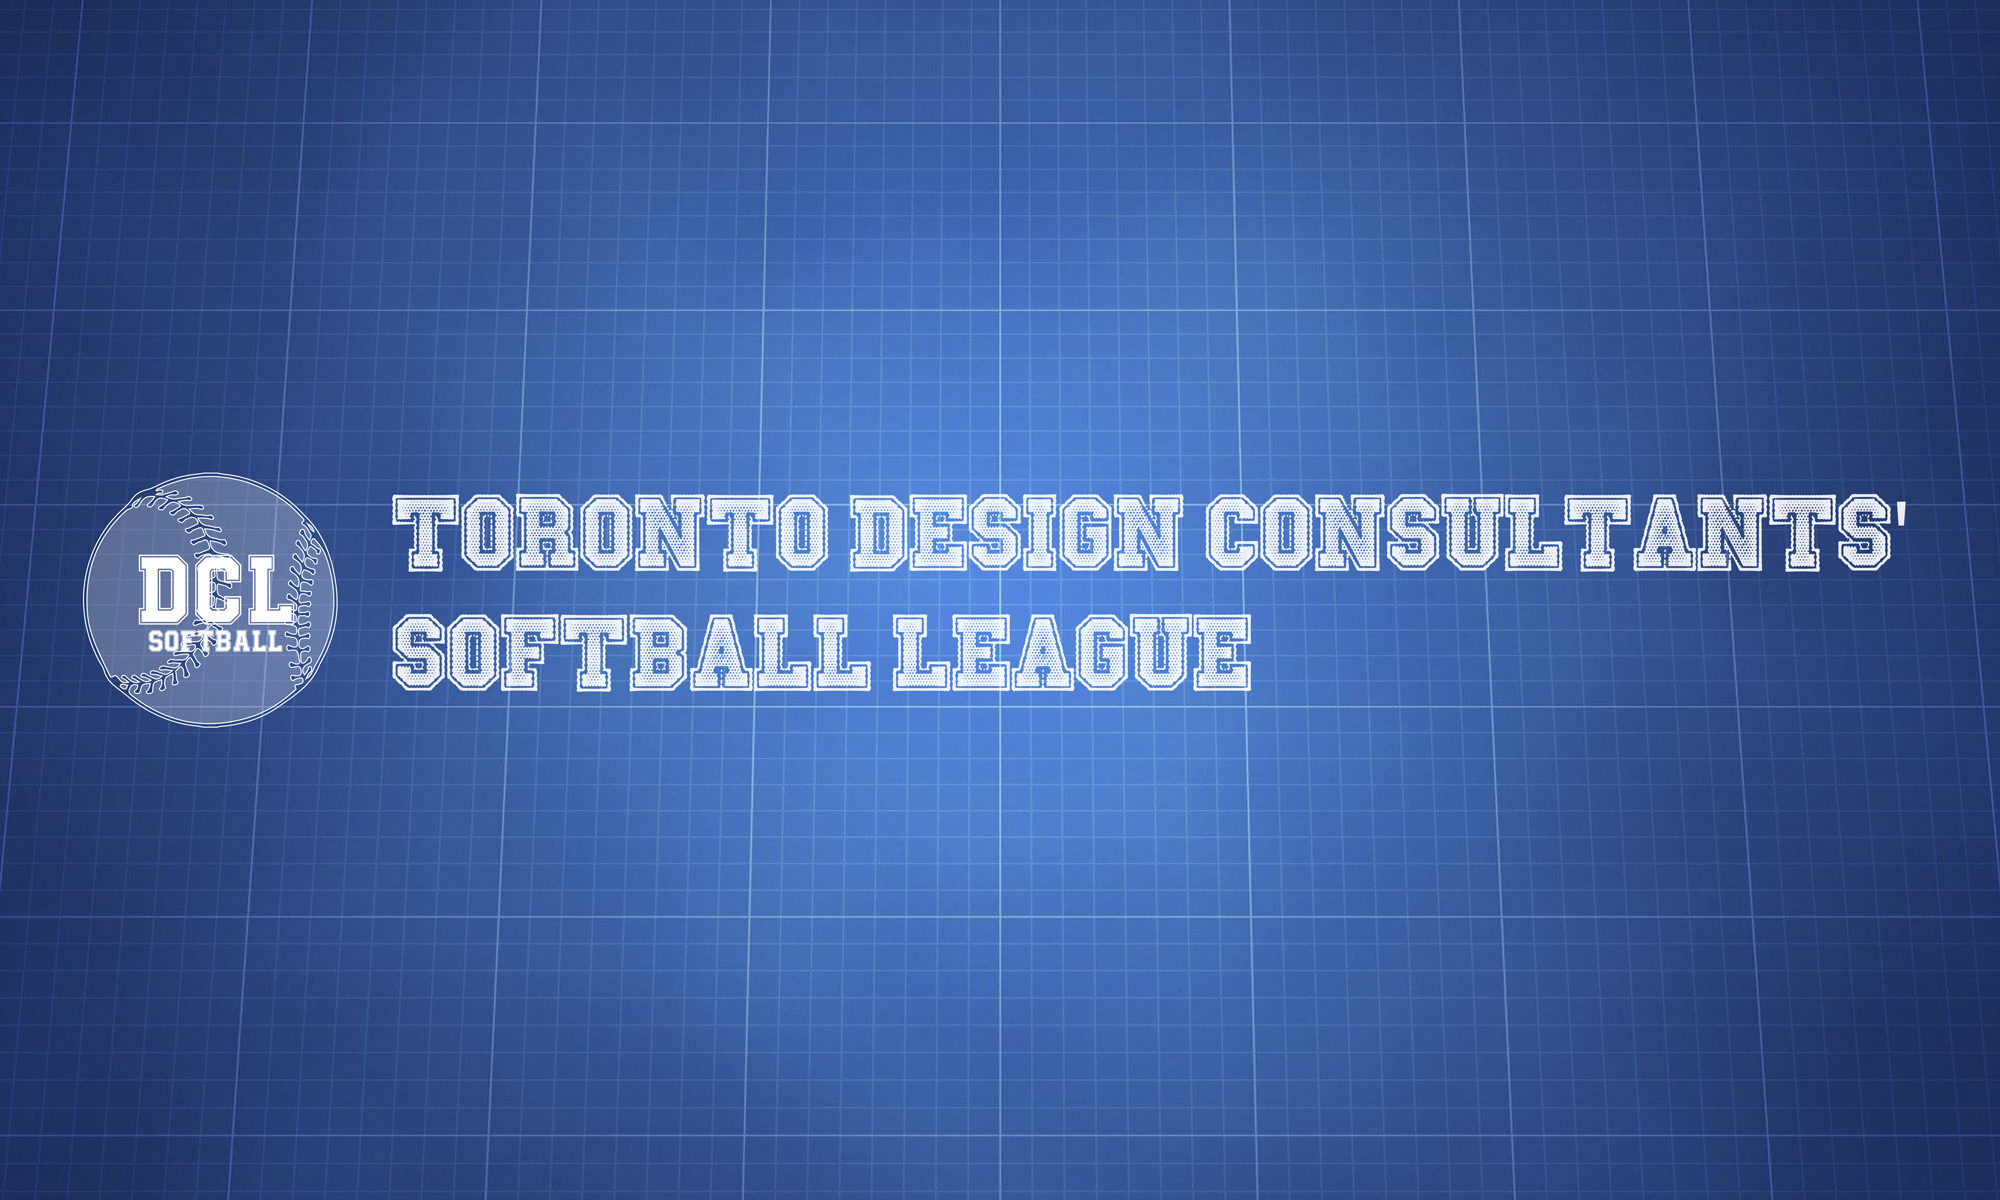 Schedule toronto design consultants 39 softball league for Design consulting toronto